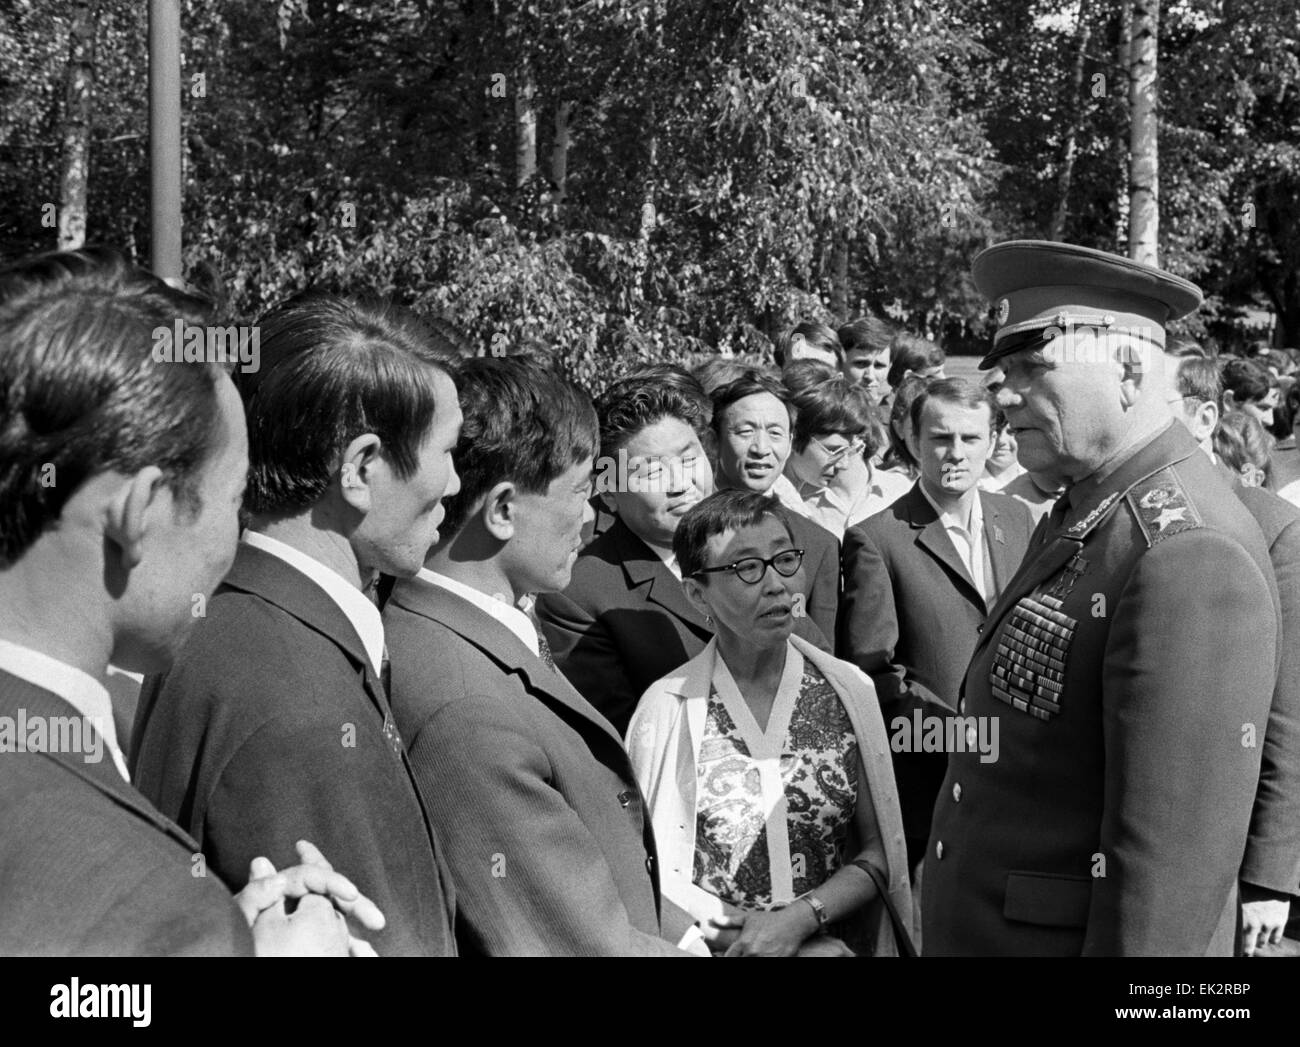 Moscow. Marshal of the Soviet Union Ivan Konev meets young people coming from the capitals of the Soviet republics. - Stock Image